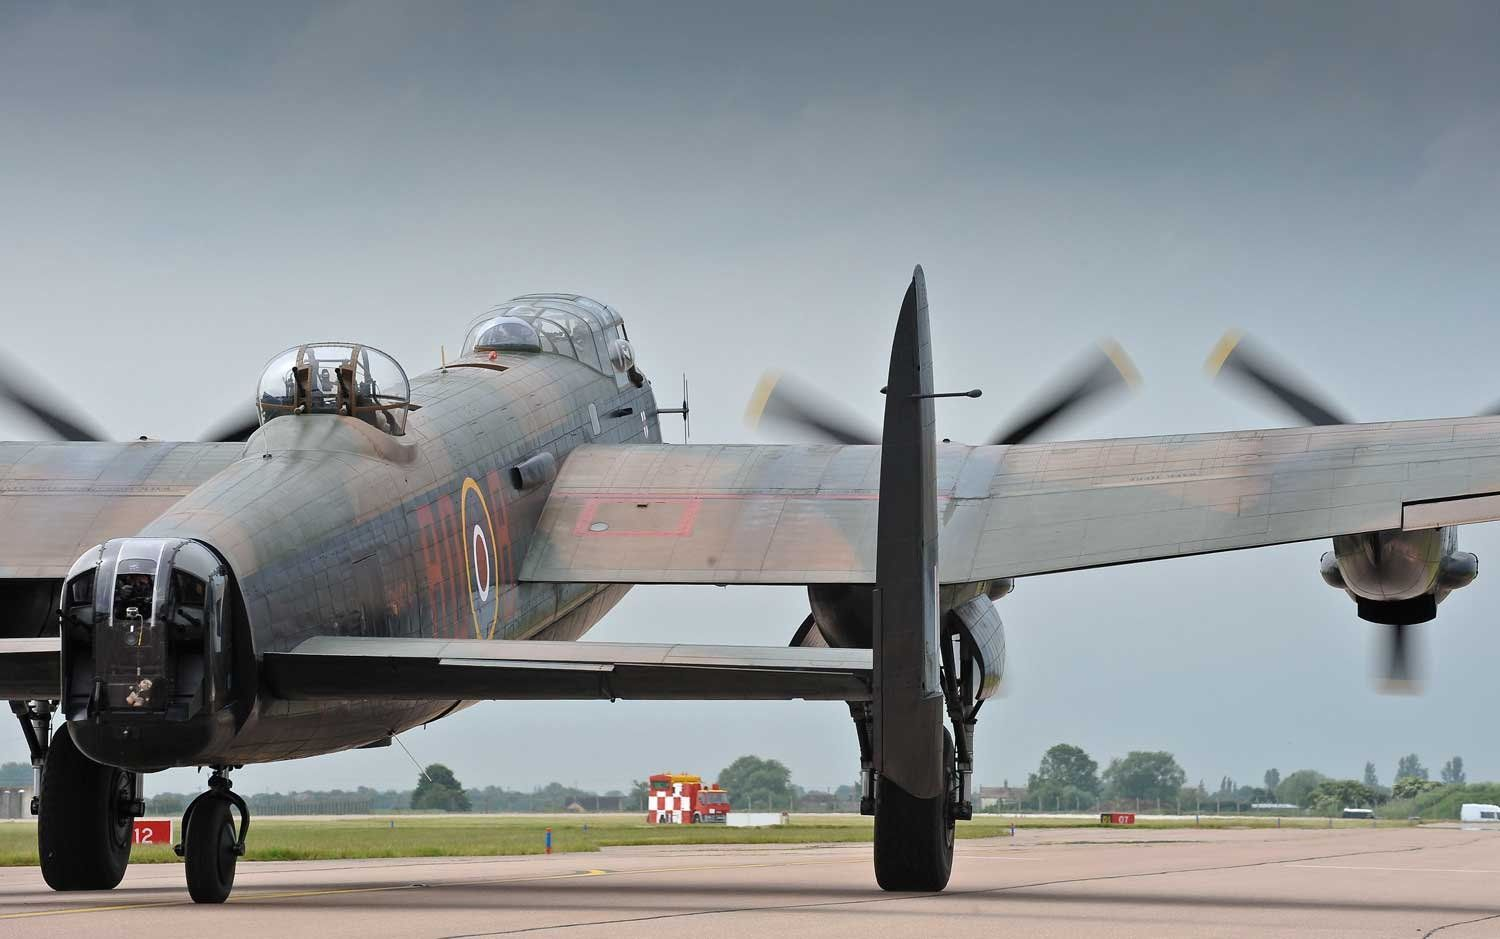 Pin by Donny Jones on Avro Lancaster Lancaster bomber